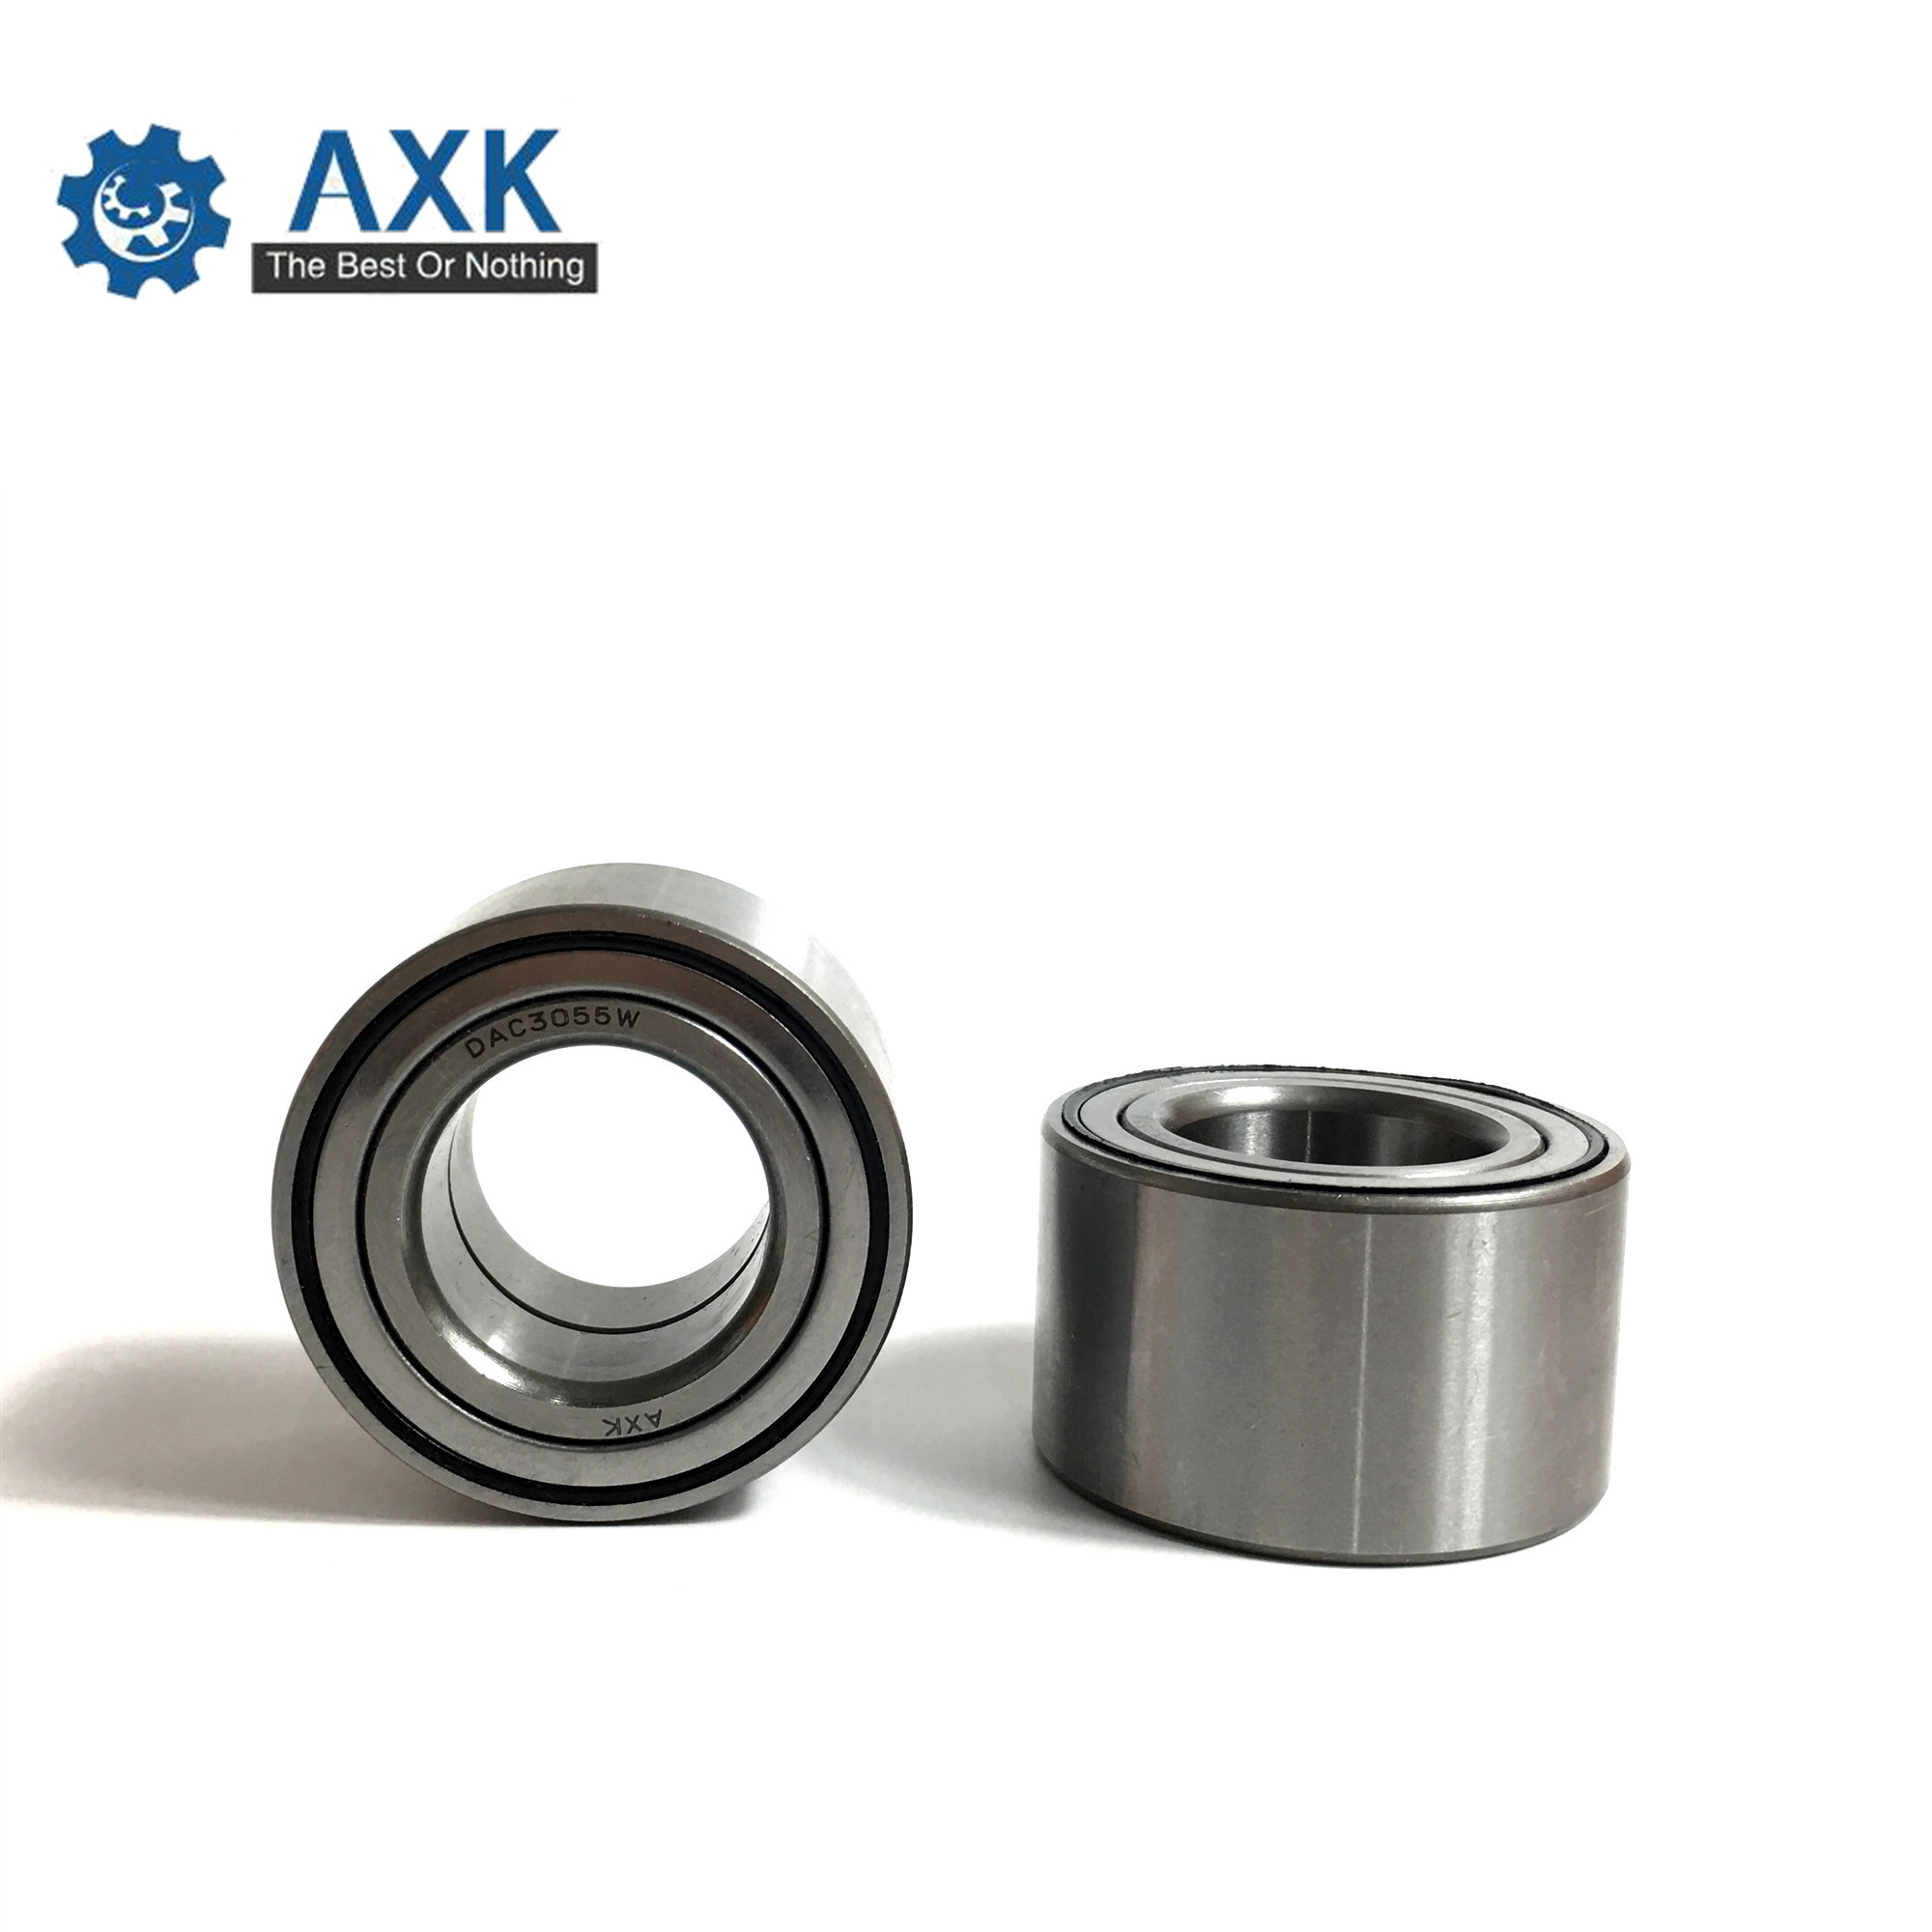 AXK  DAC3055W Bearings  Dac30550032 30x55x32mm Dac3055 Atv Utv Car Bearing Auto Wheel Hub Bearing Atv Wheel Bearing